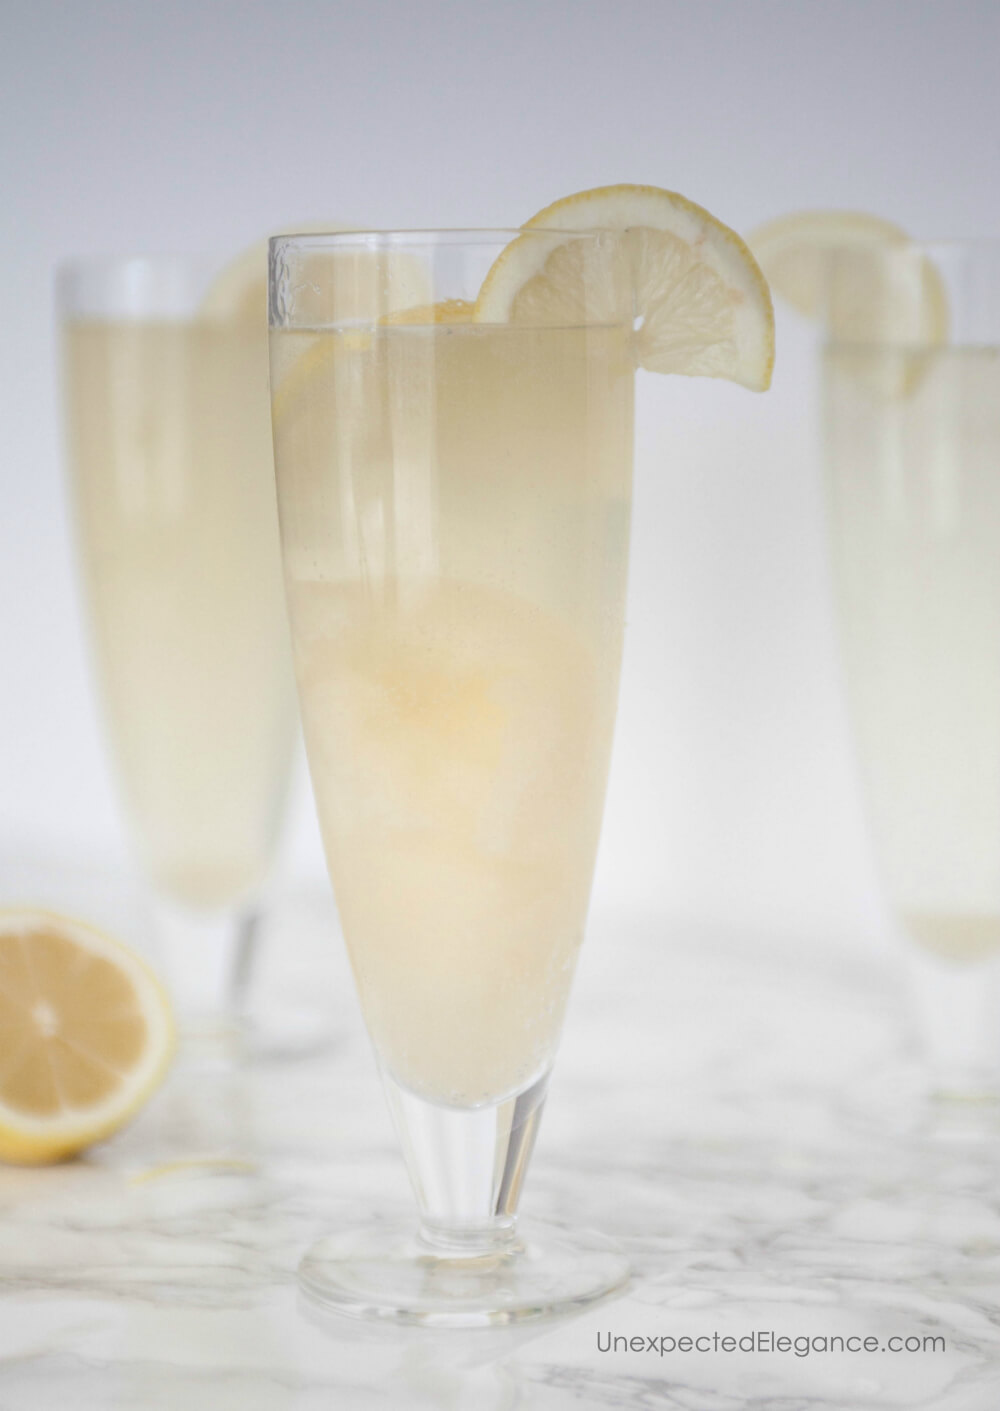 Looking for a refreshing and fun drink for your next gathering? Try this Sgroppino cocktail recipe! The simple flavors make it perfect for any time of year.